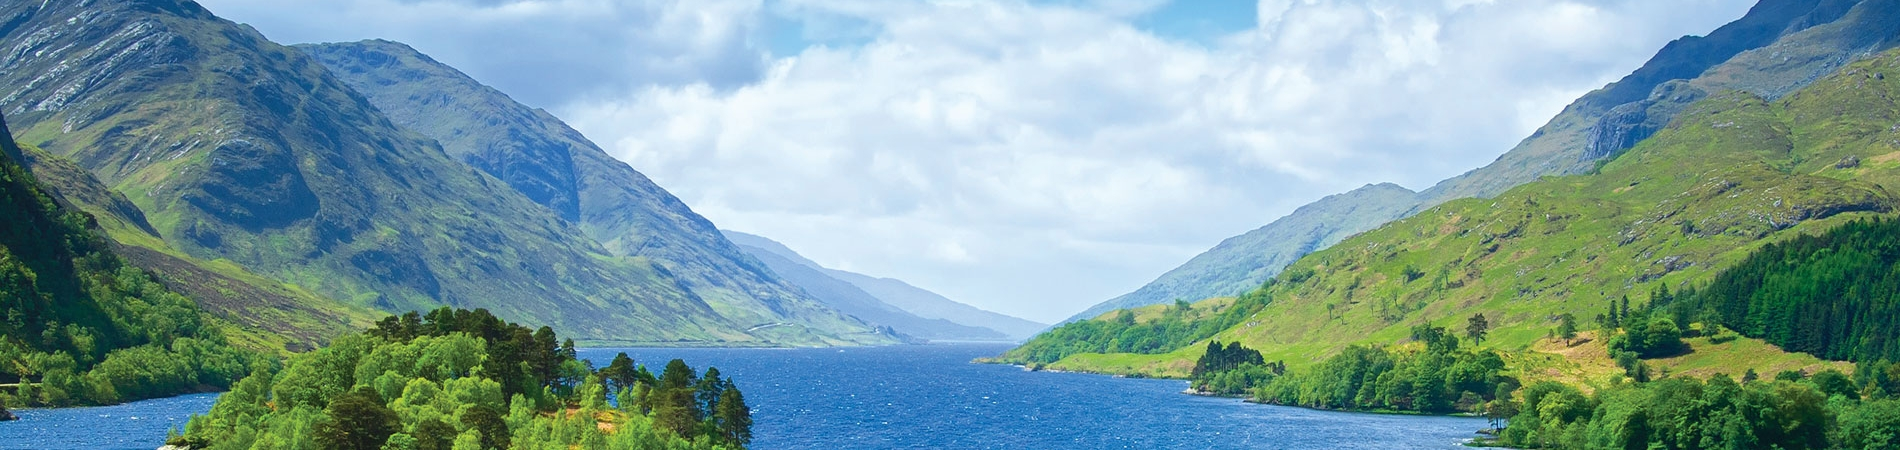 Gazing across a gorgeous loch enjoying a coach tour with Lochs and Glens